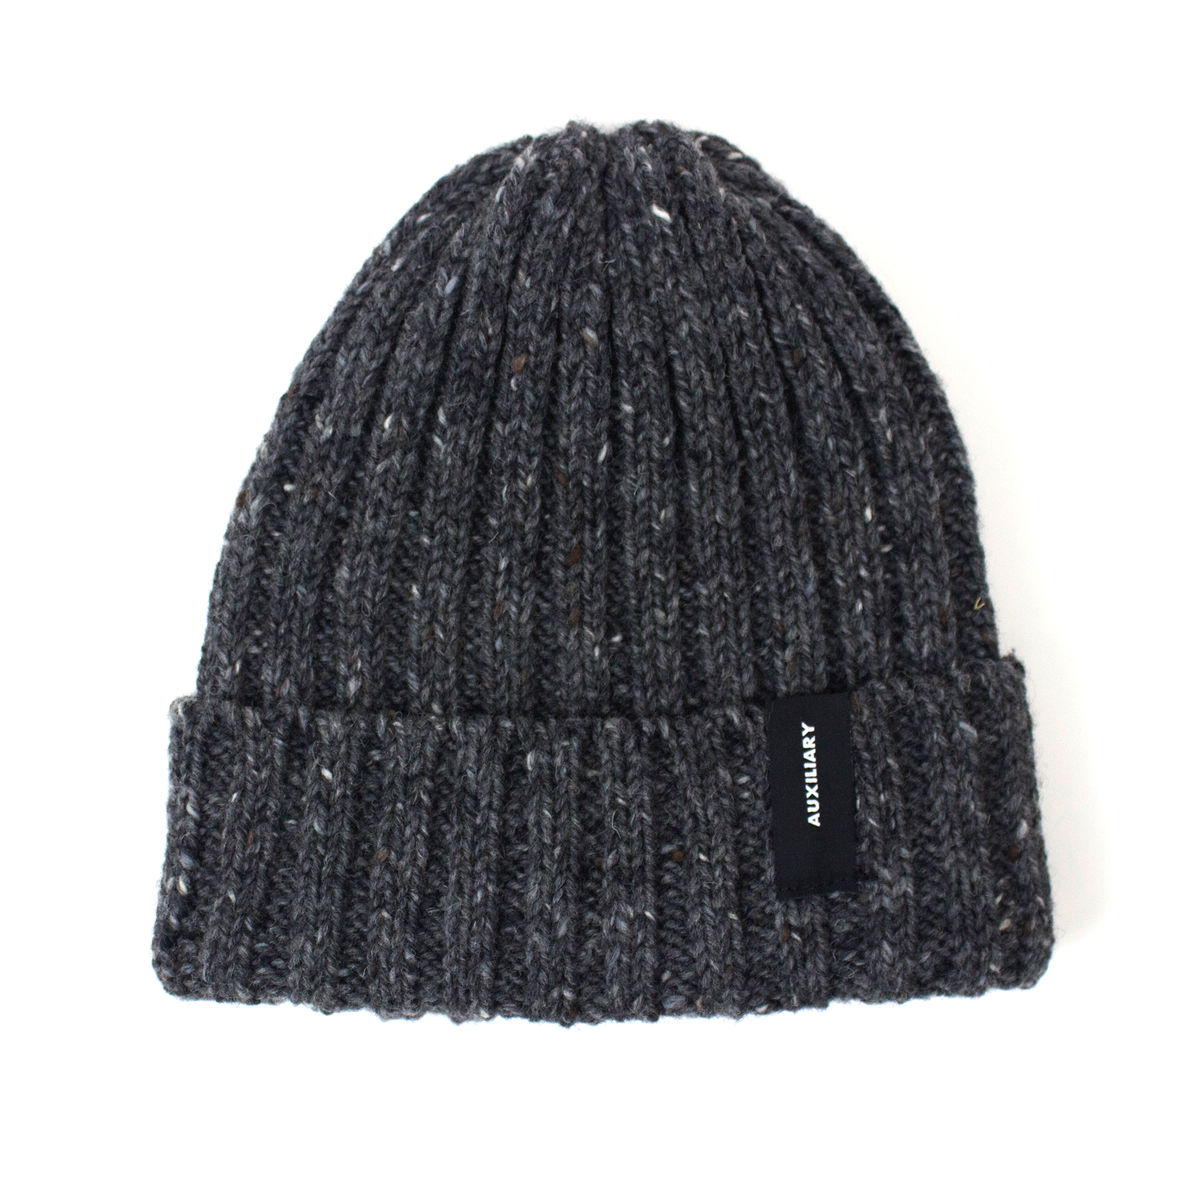 AOP Highland Beanie - product image